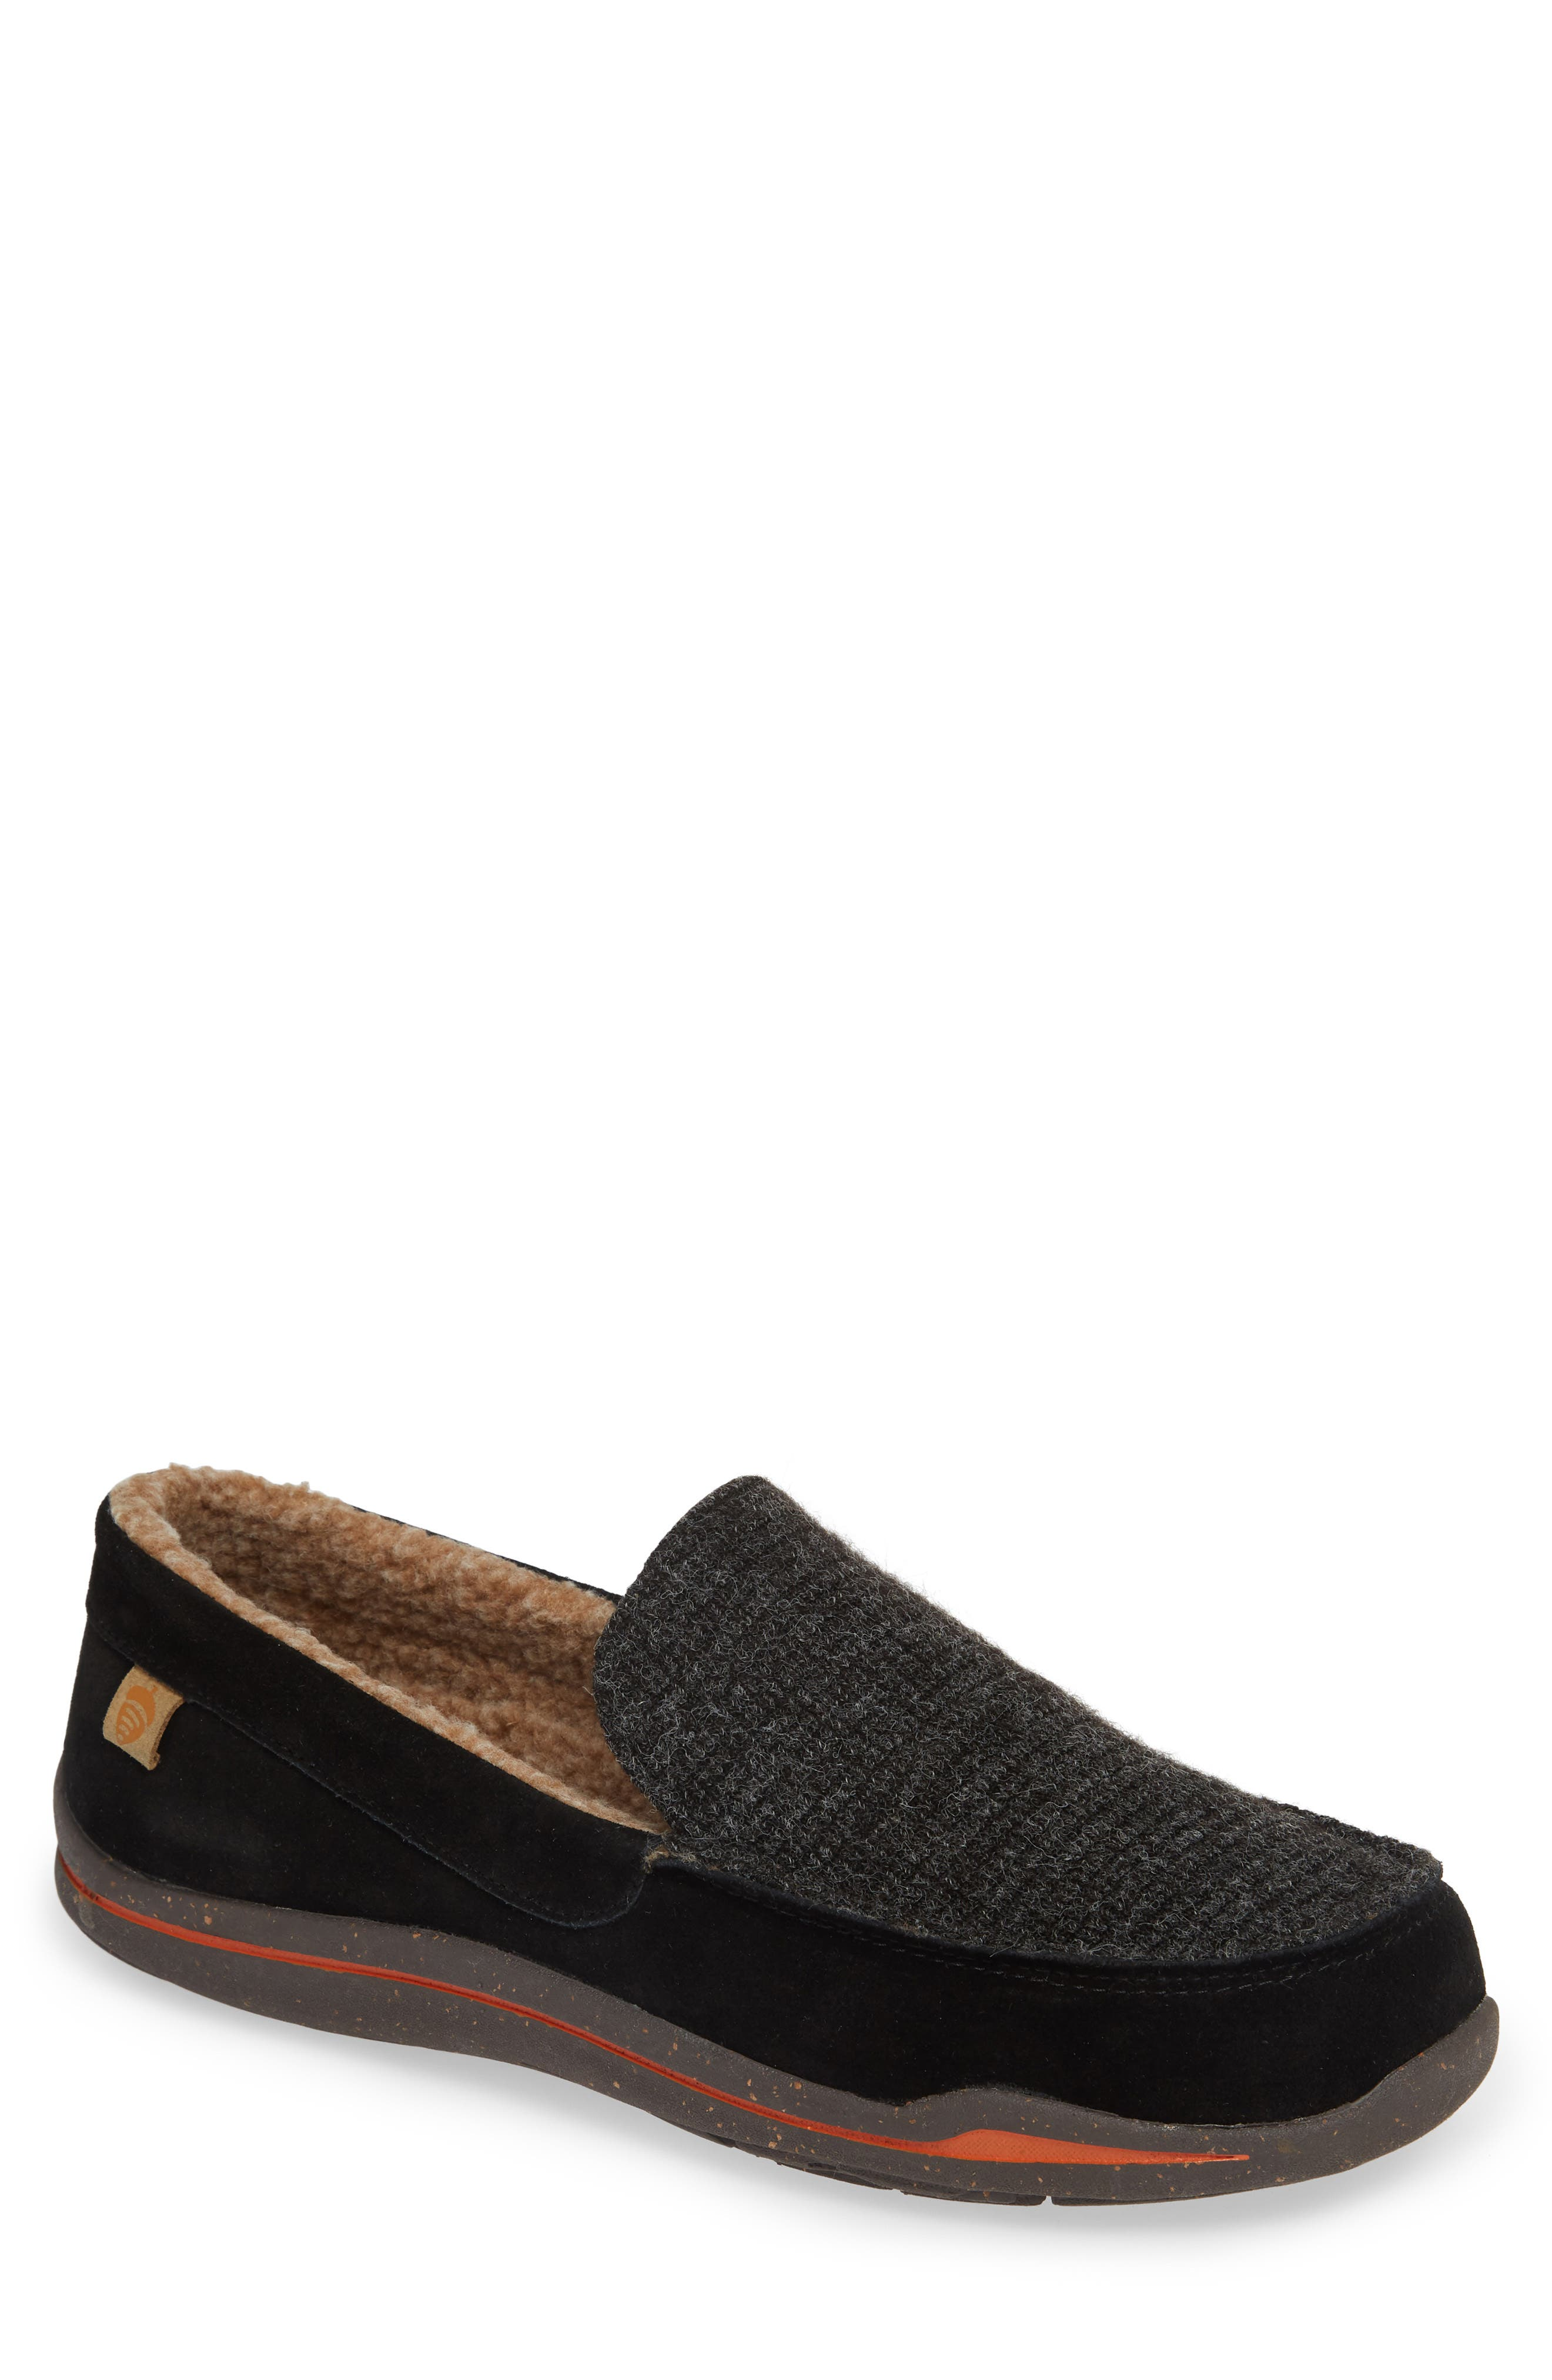 Ellsworth Moc Toe Slipper,                             Main thumbnail 1, color,                             BLACK